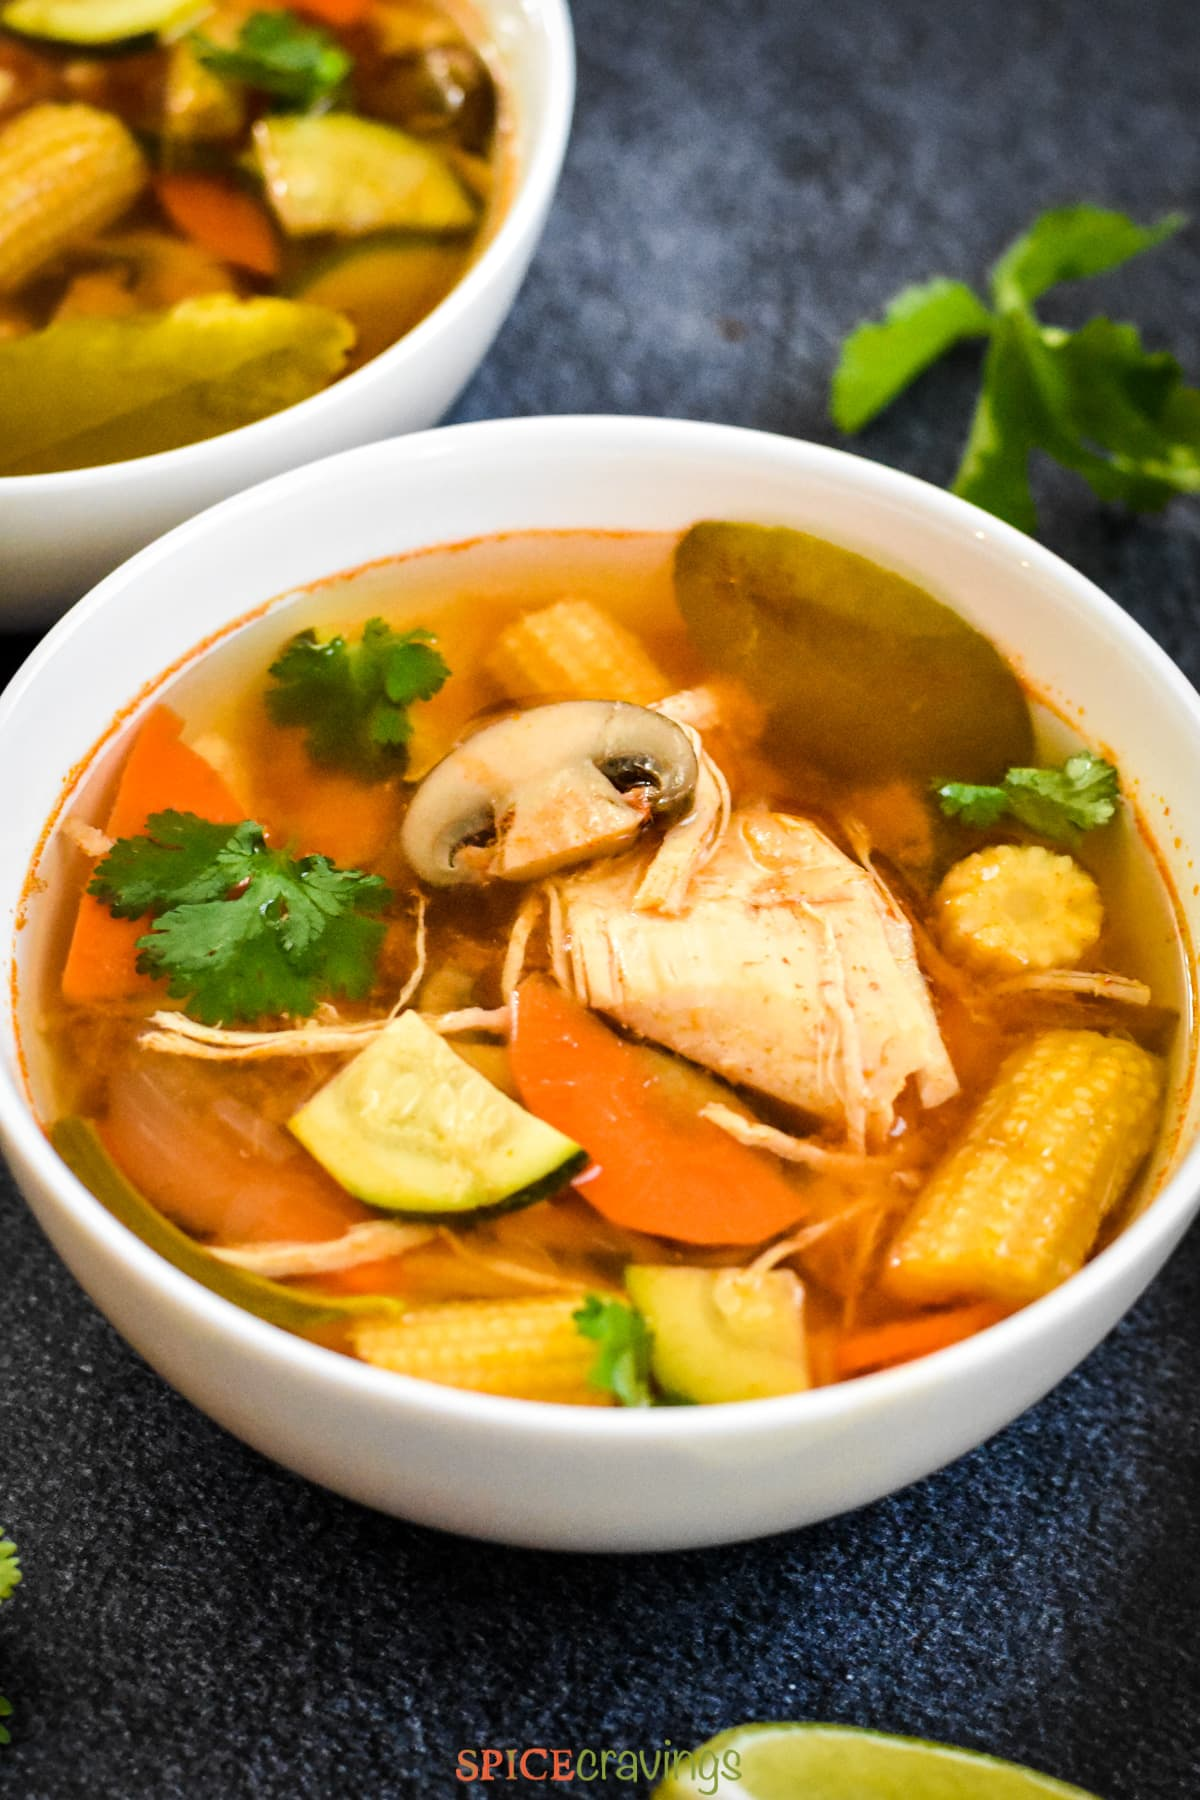 A bowl of tom yum soup with chicken, mushrooms and baby corn